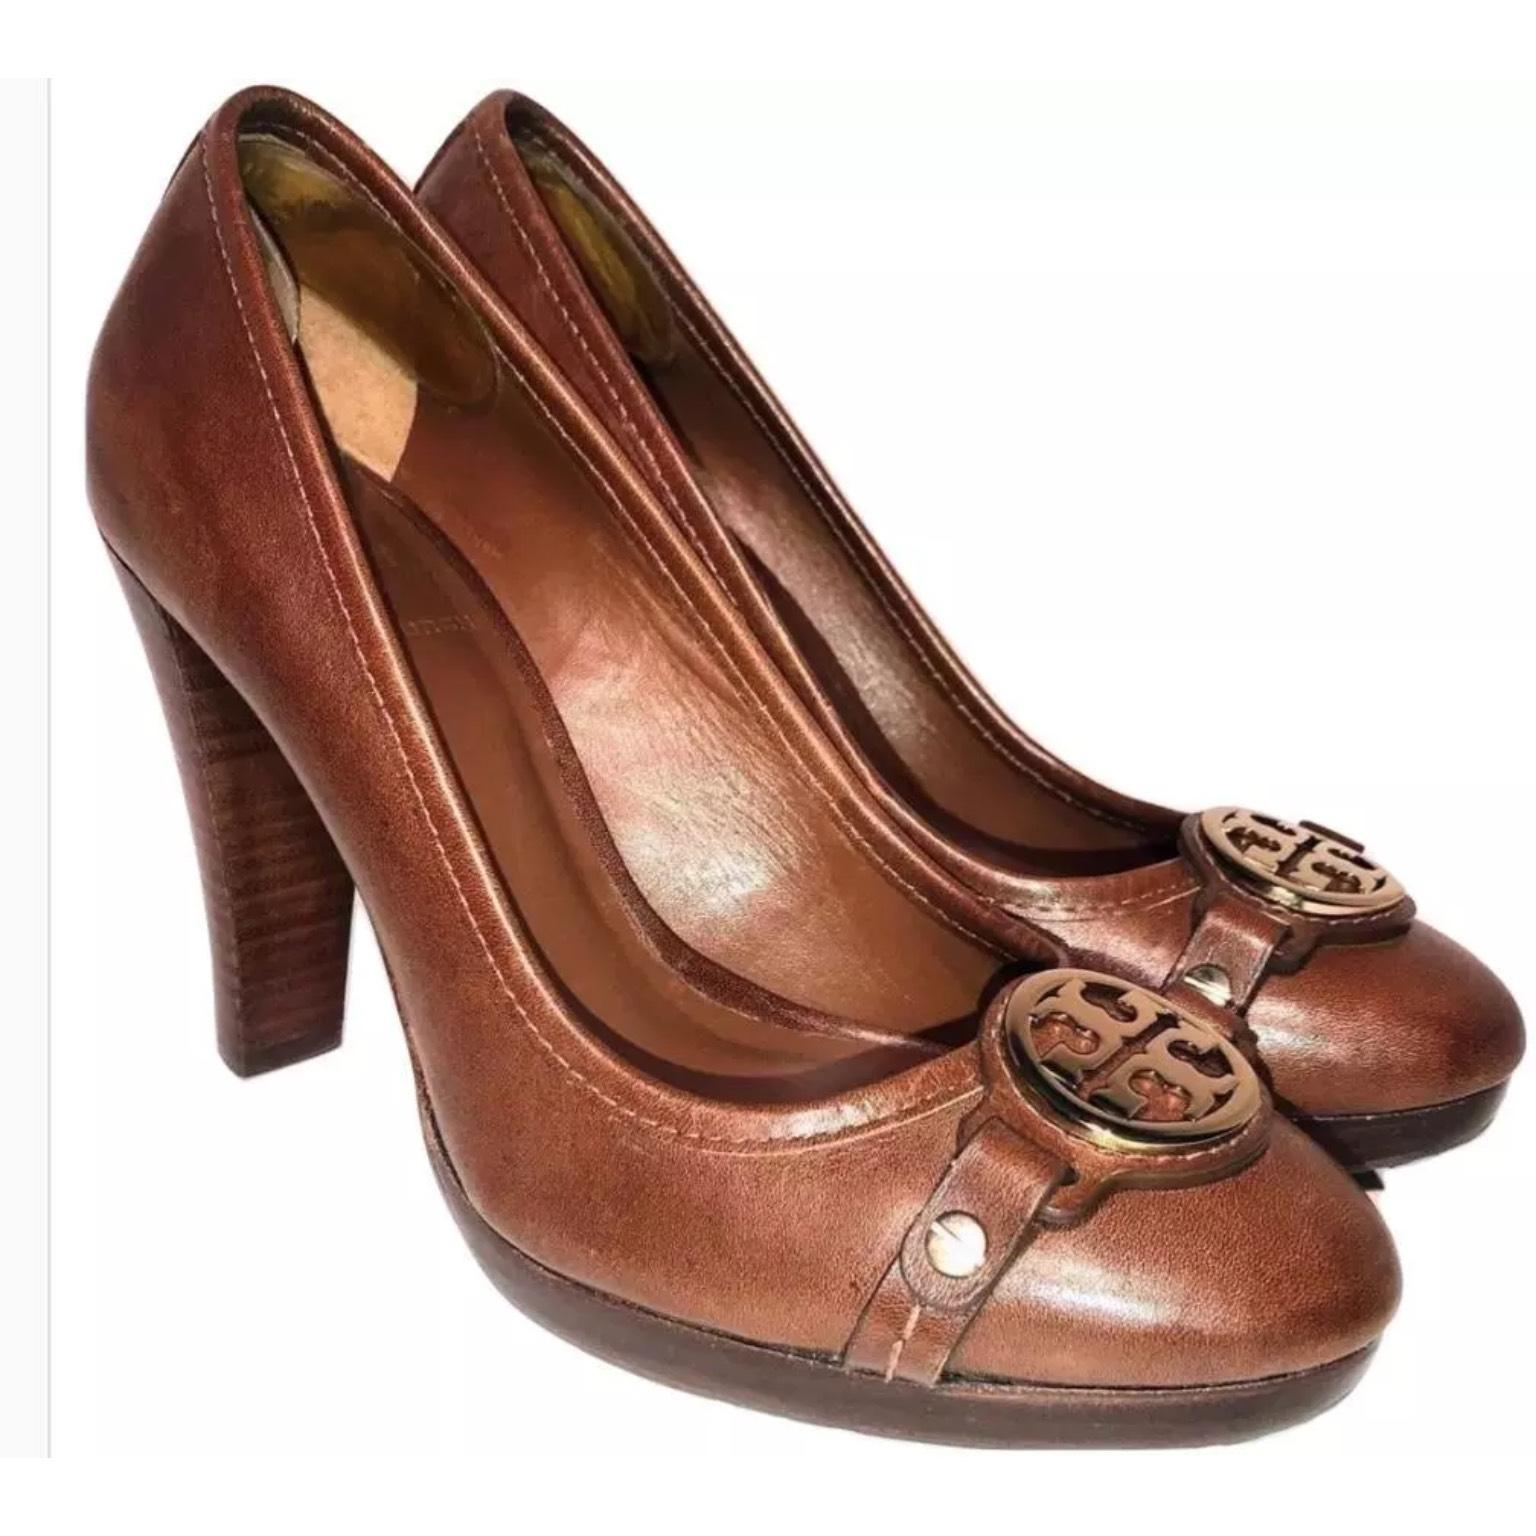 Tory Burch Tan Leather Pumps High Heels with 1/2